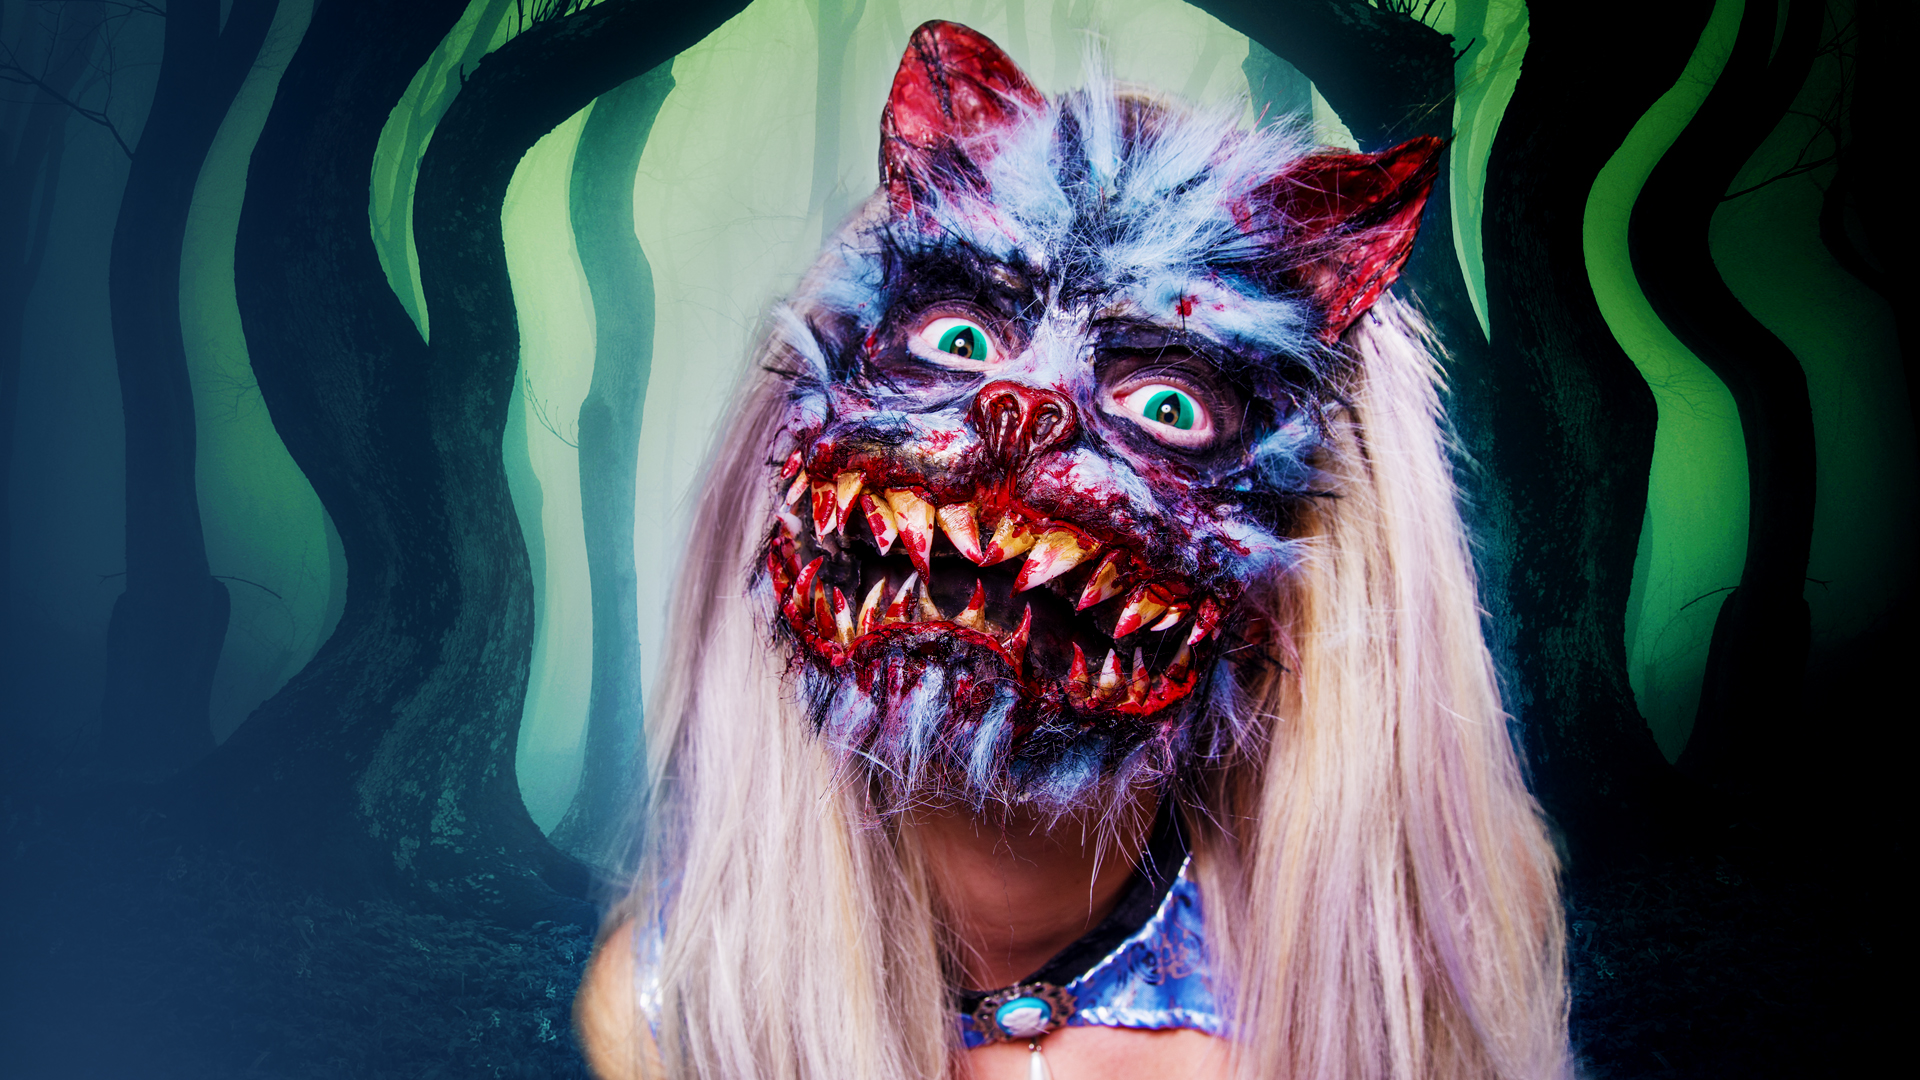 The Other Mother Halloween Makeup Tutorial - Cheshire-cat-makeup-tutorial-you